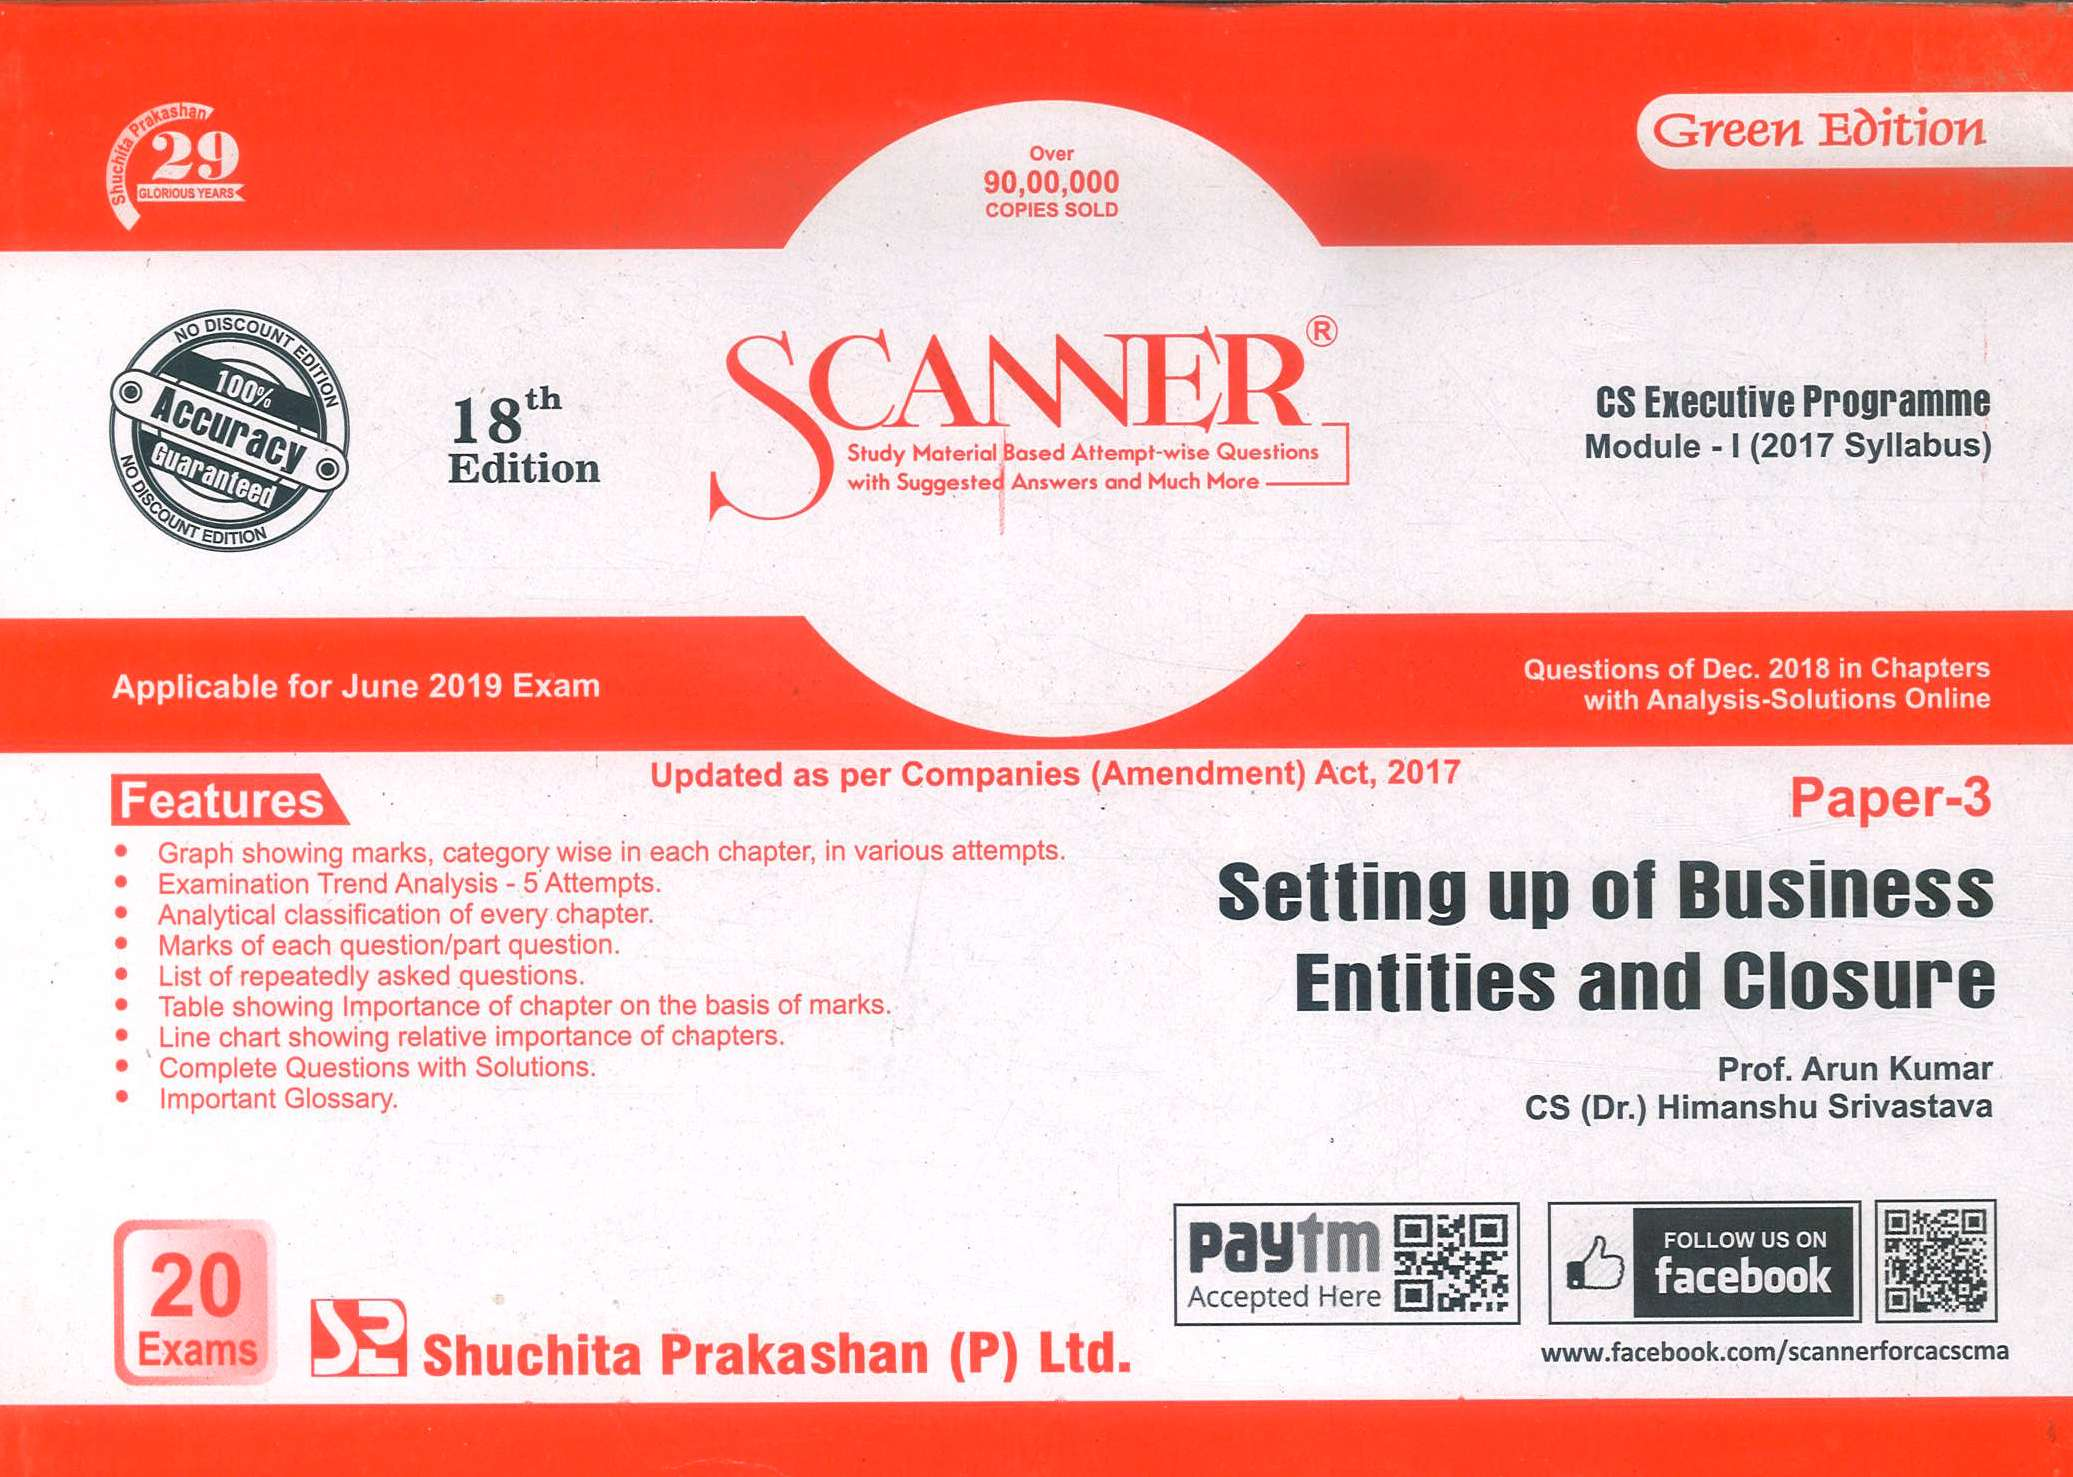 Shuchita Solved Scanner CS Executive Programme Module-I (2017 Syllabus) Paper-3 Setting up of Business Entities and Closure By Arun Kumar and Himanshu Srivastava Applicable for June 2019 Exam